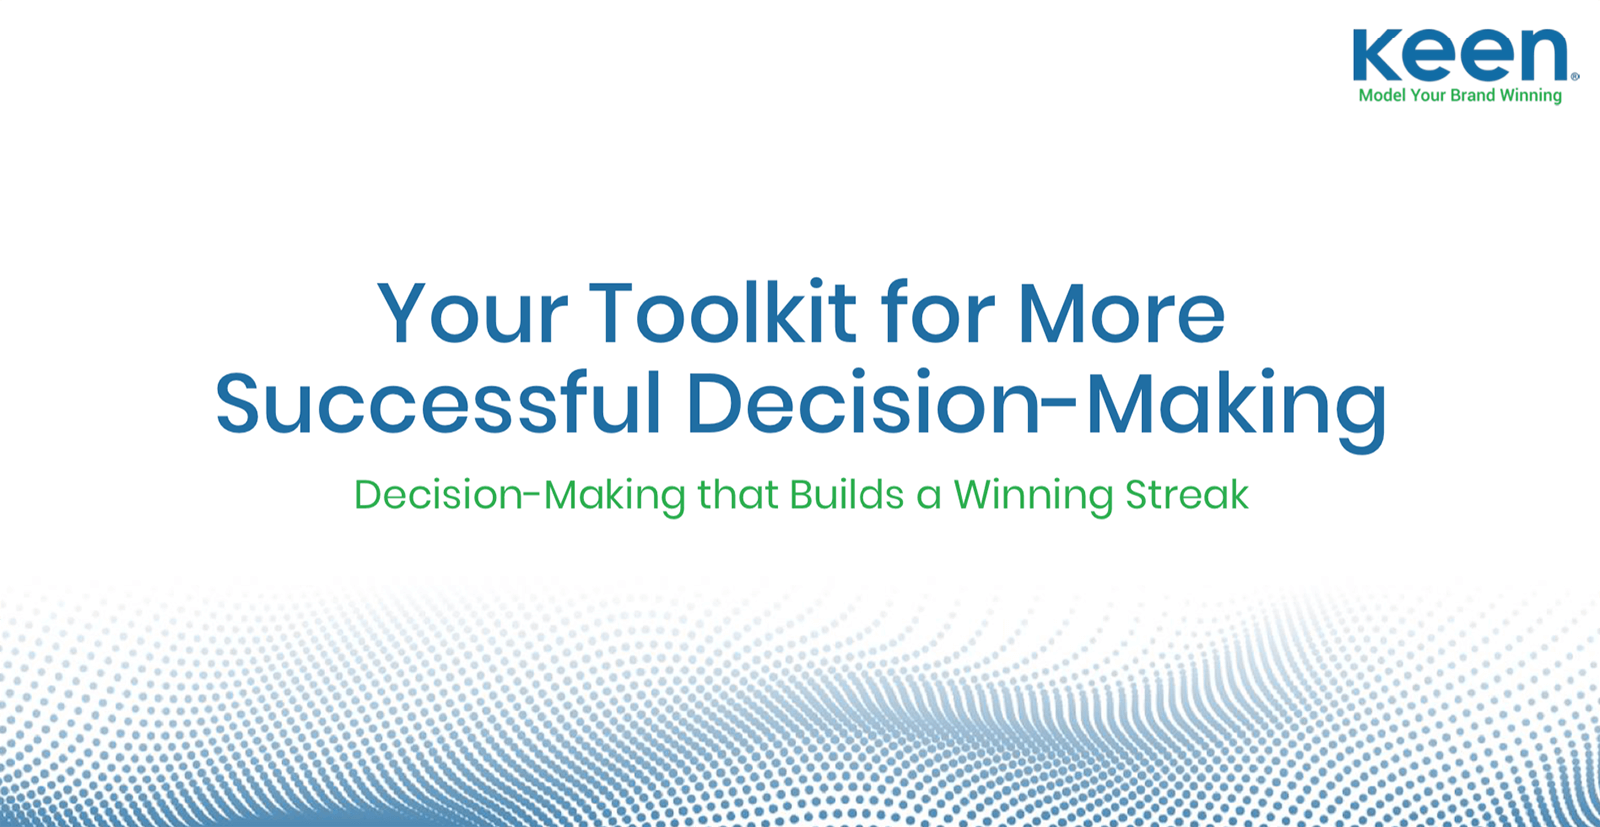 Cover of keen guide on successful decision-making in predictive marketing analytics